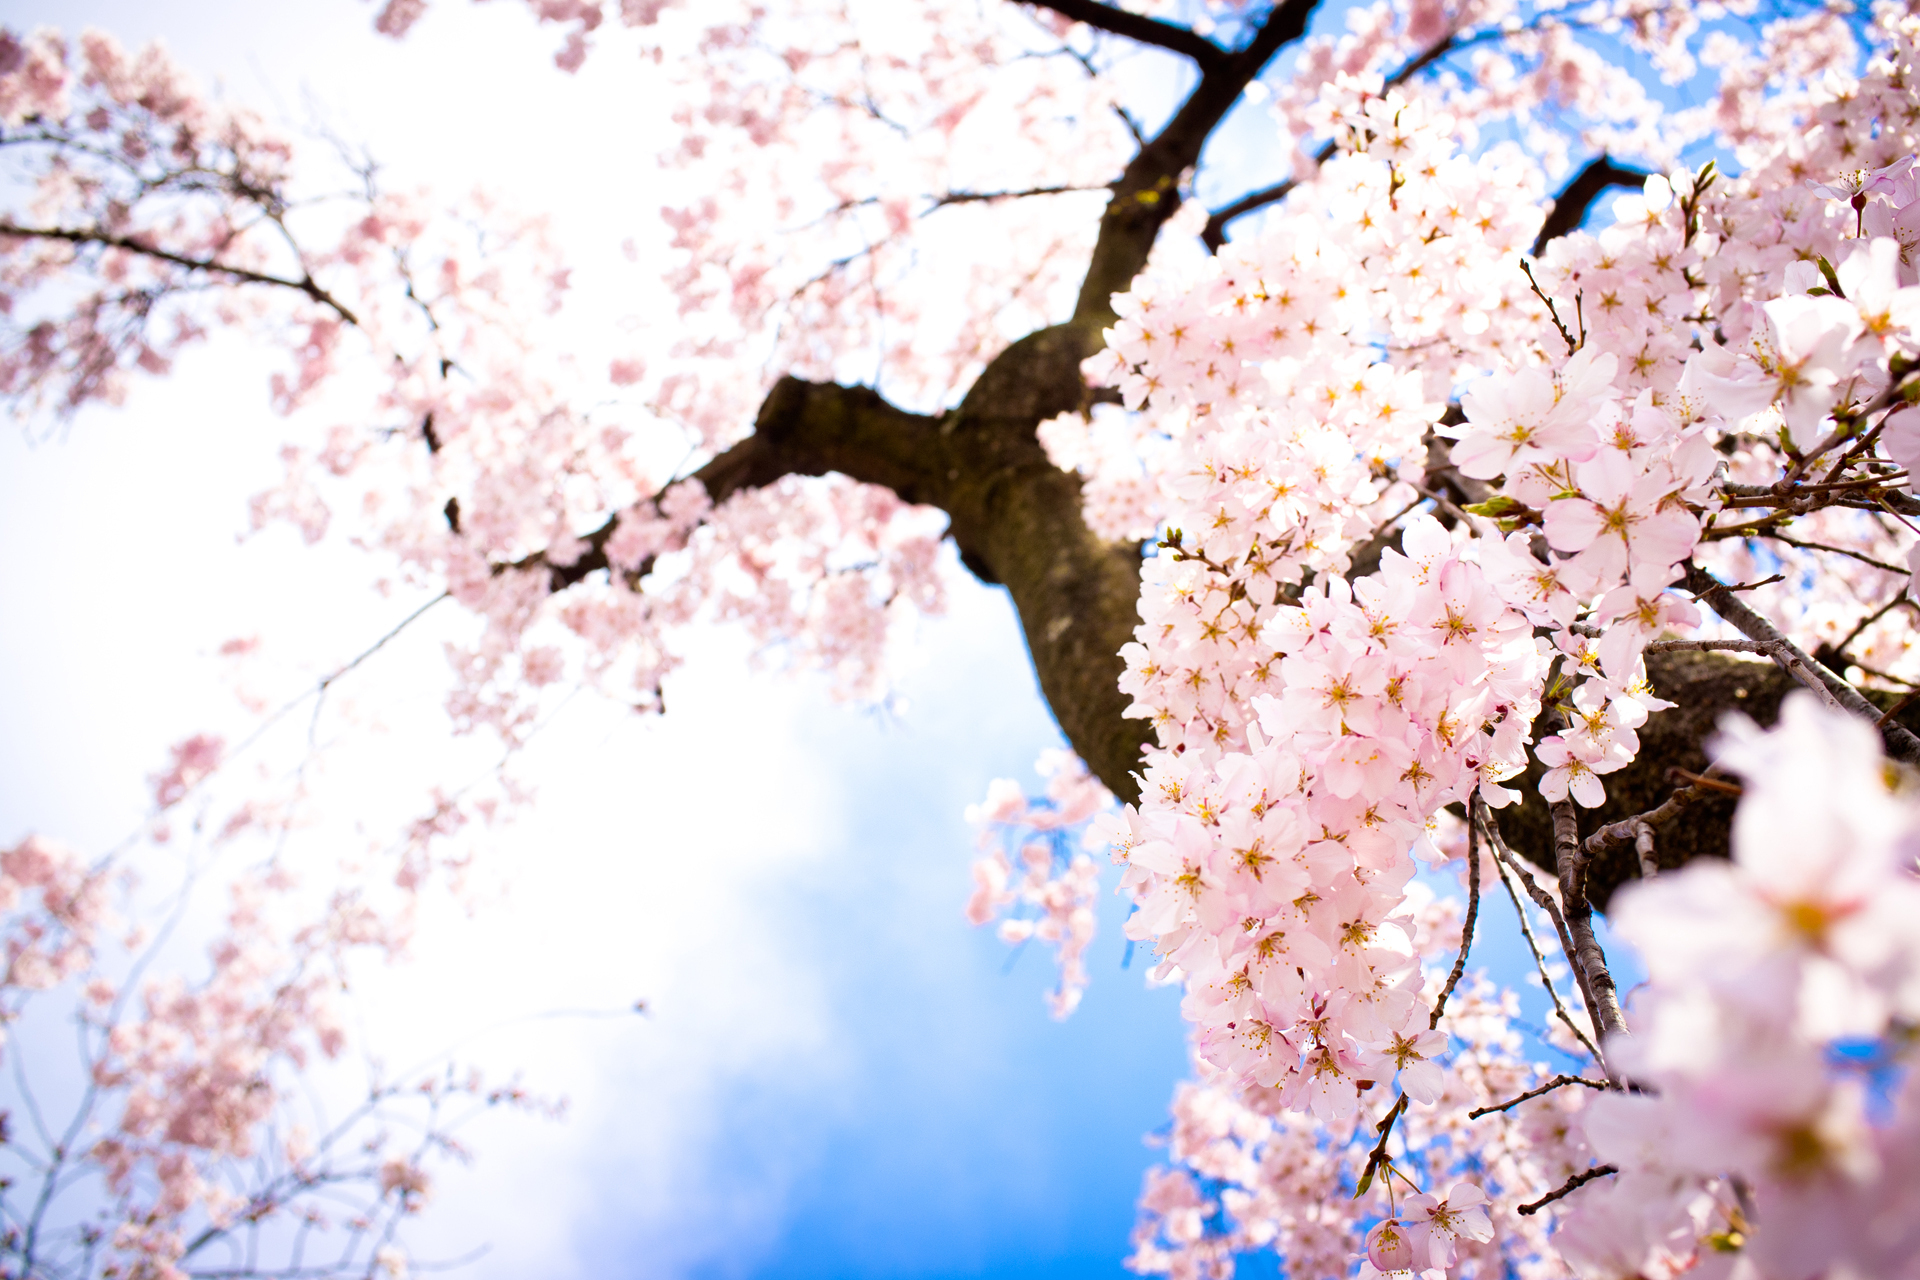 Perfect Cherry Blossom Images Cherry Blossom Hd Wallpaper Andbackground Photos Cherry Blossom Images Cherry Blossom Hd Wallpaper Cherry Blossom Wallpaper Hd Cherry Blossom Wallpaper Iphone X houzz-03 Cherry Blossom Wallpaper